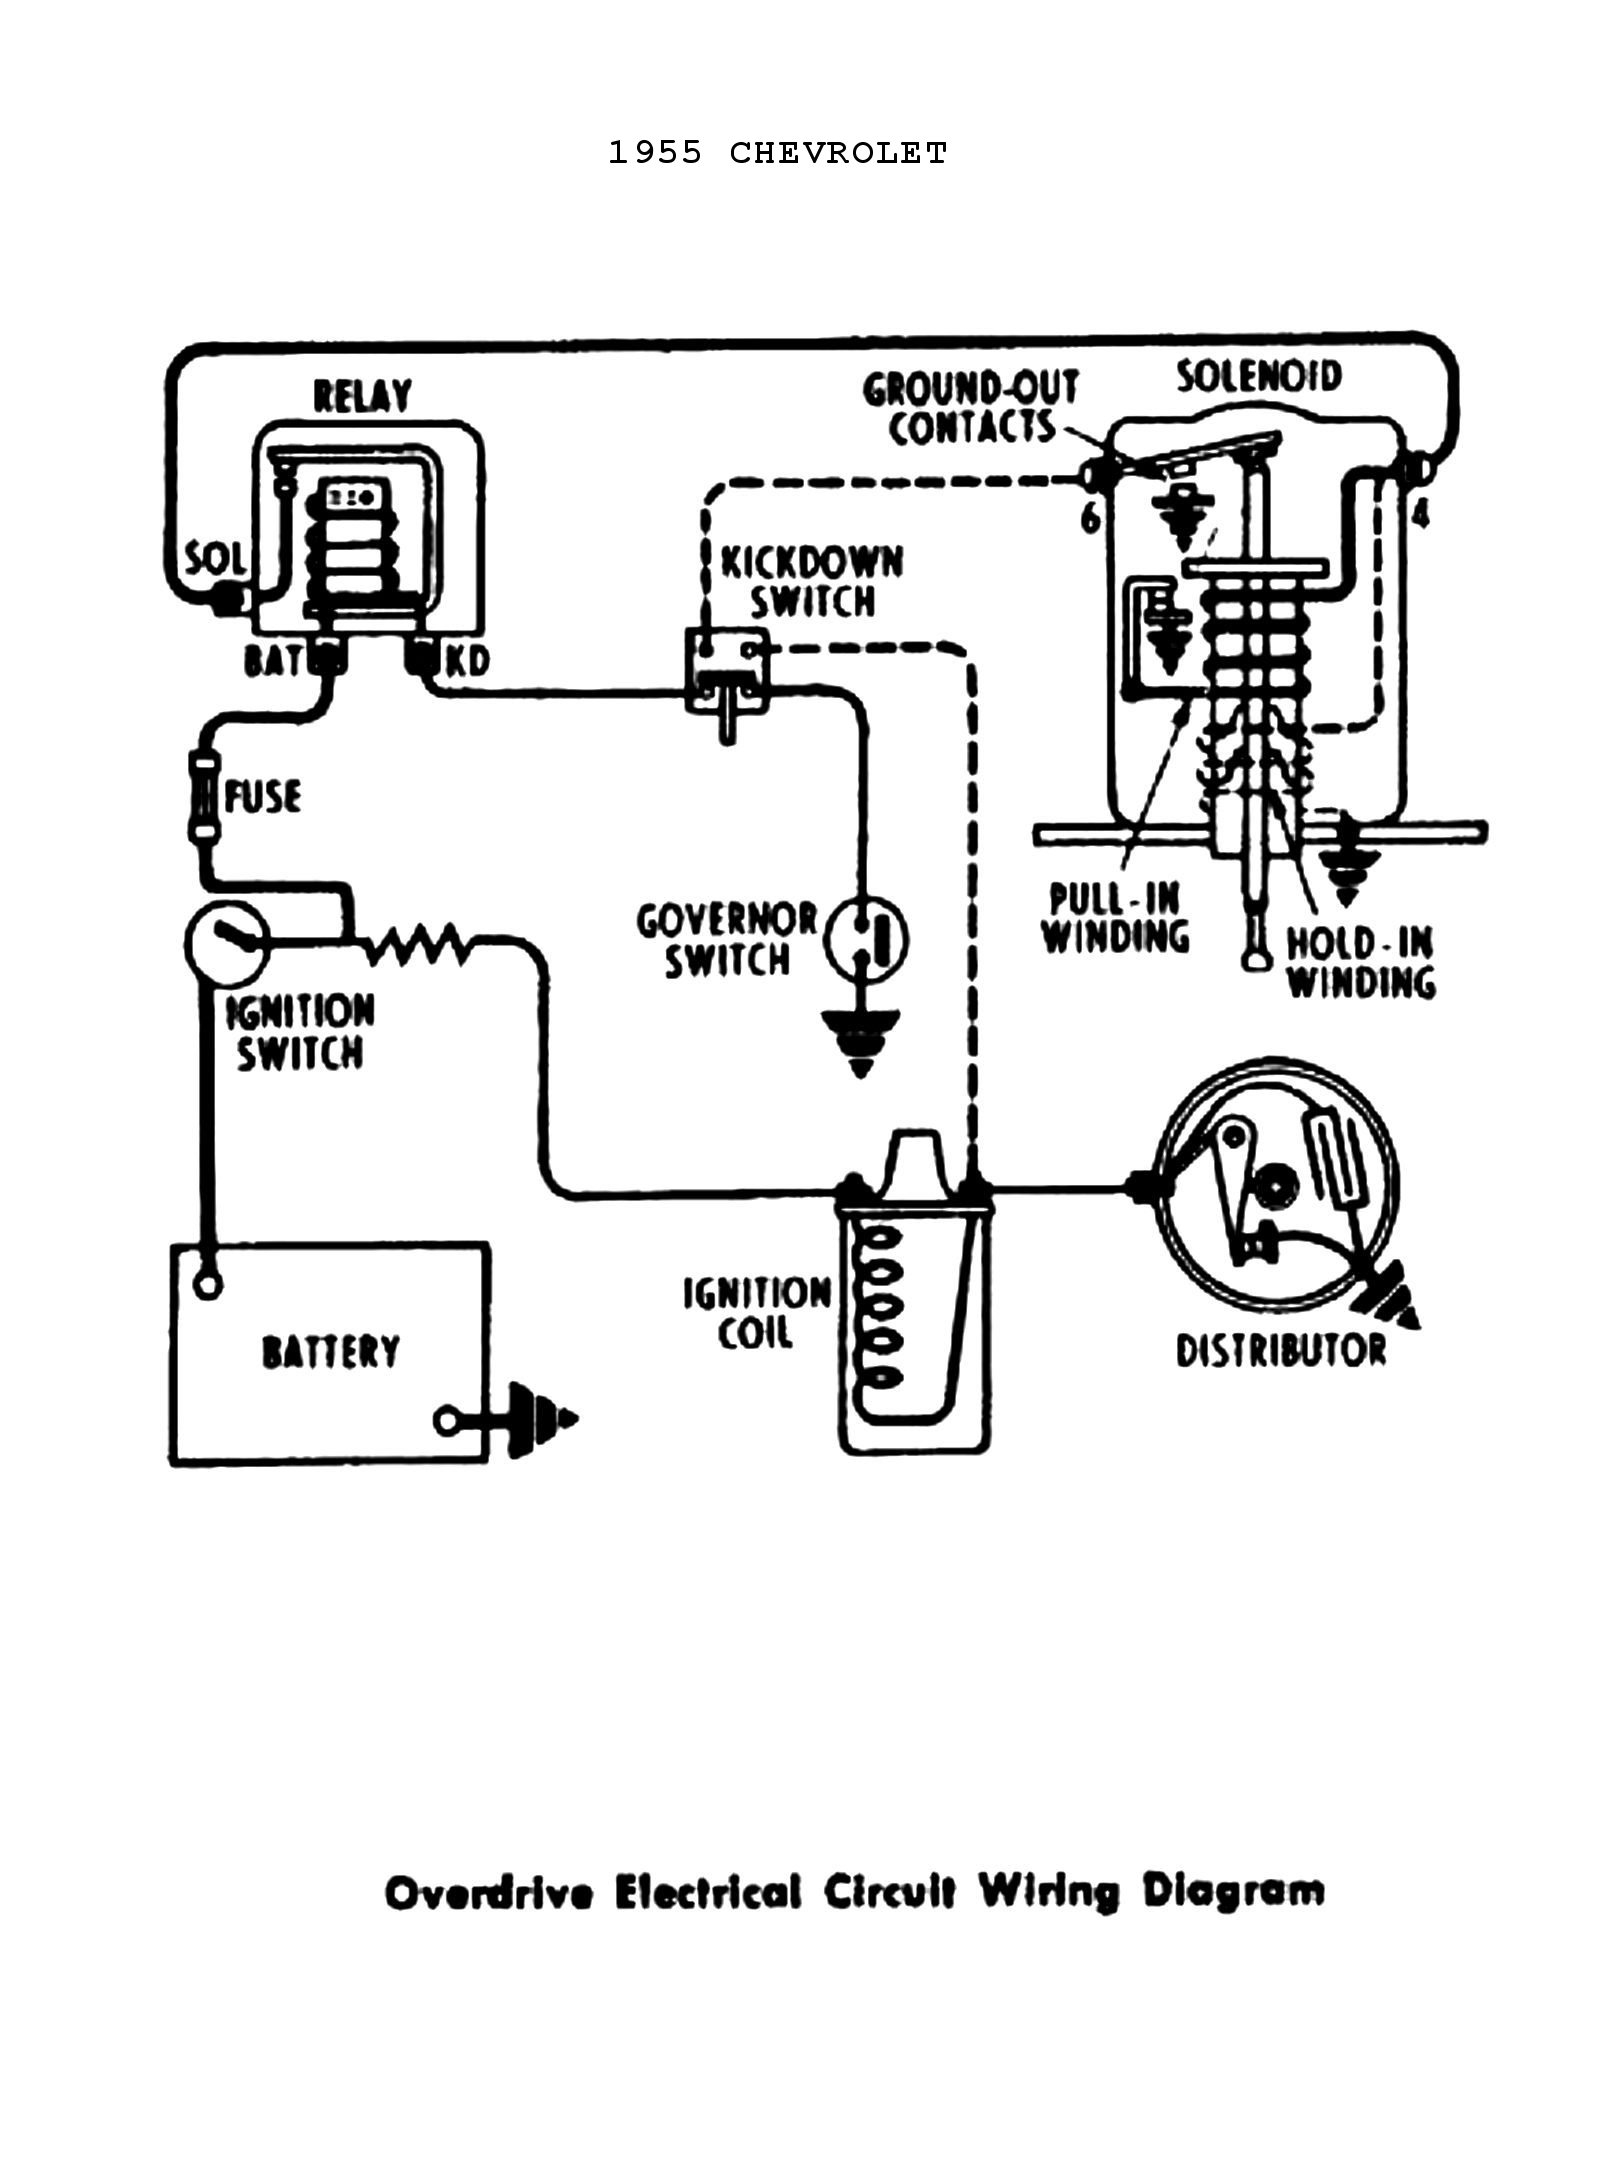 Automotive Voltage Regulator Wiring Diagram